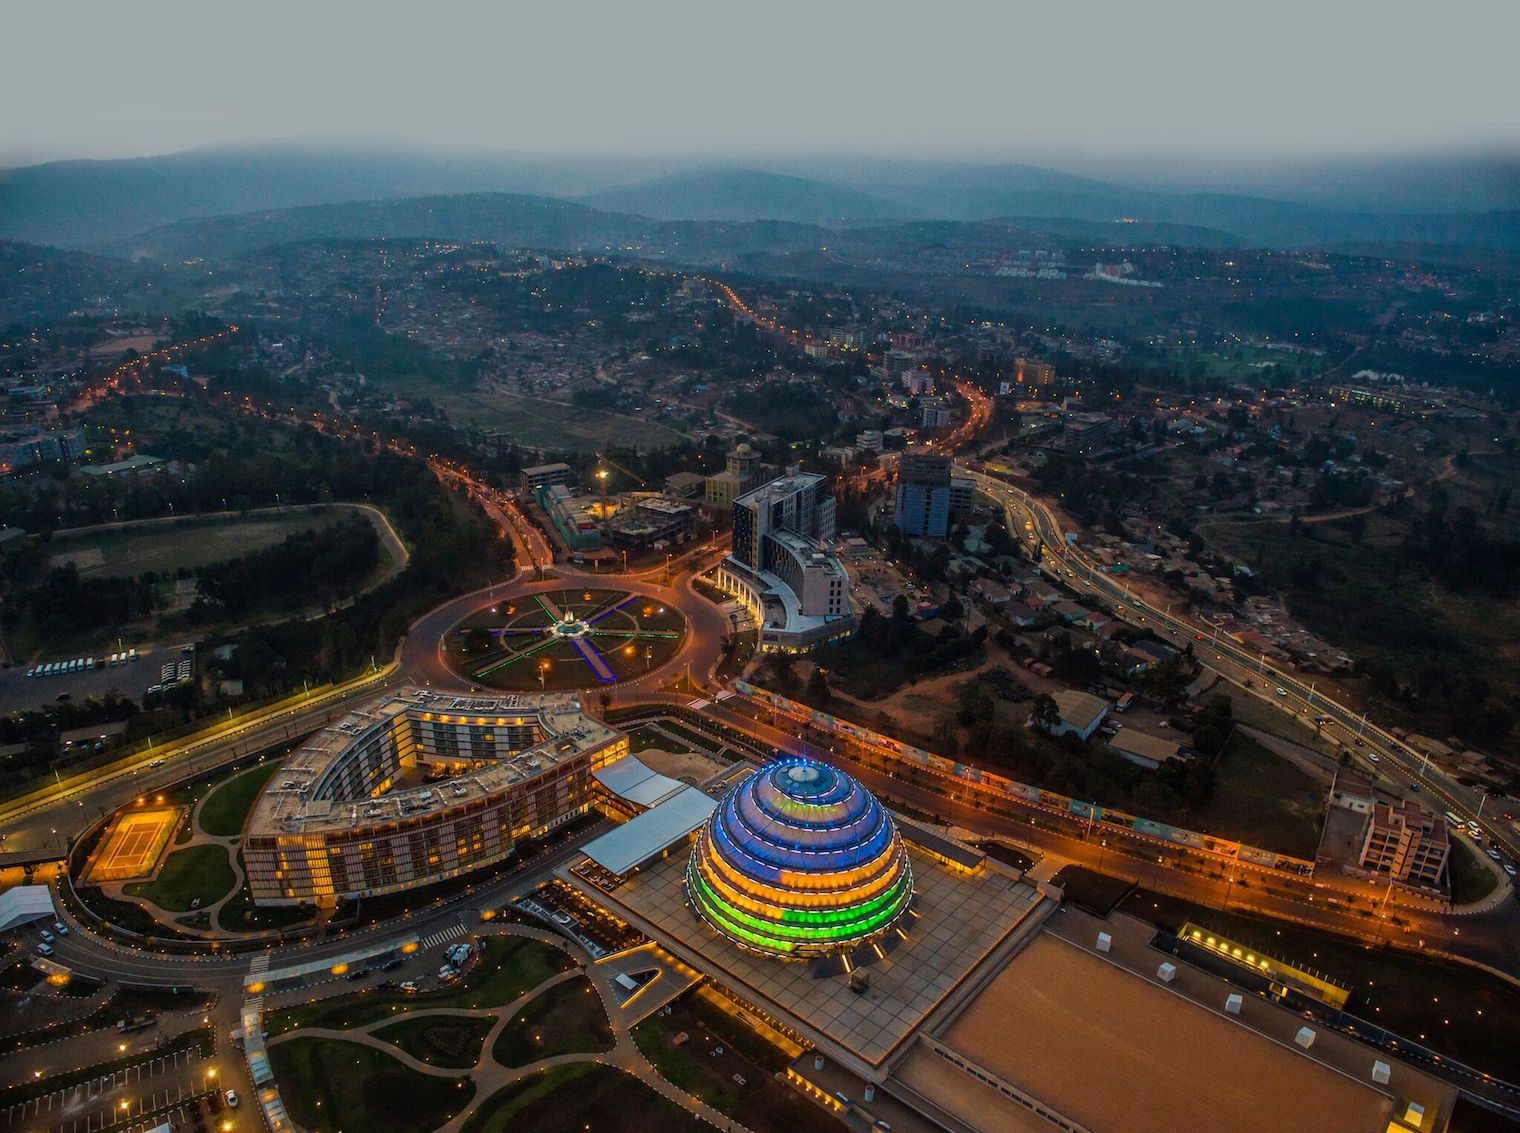 Aerial view of Kigali